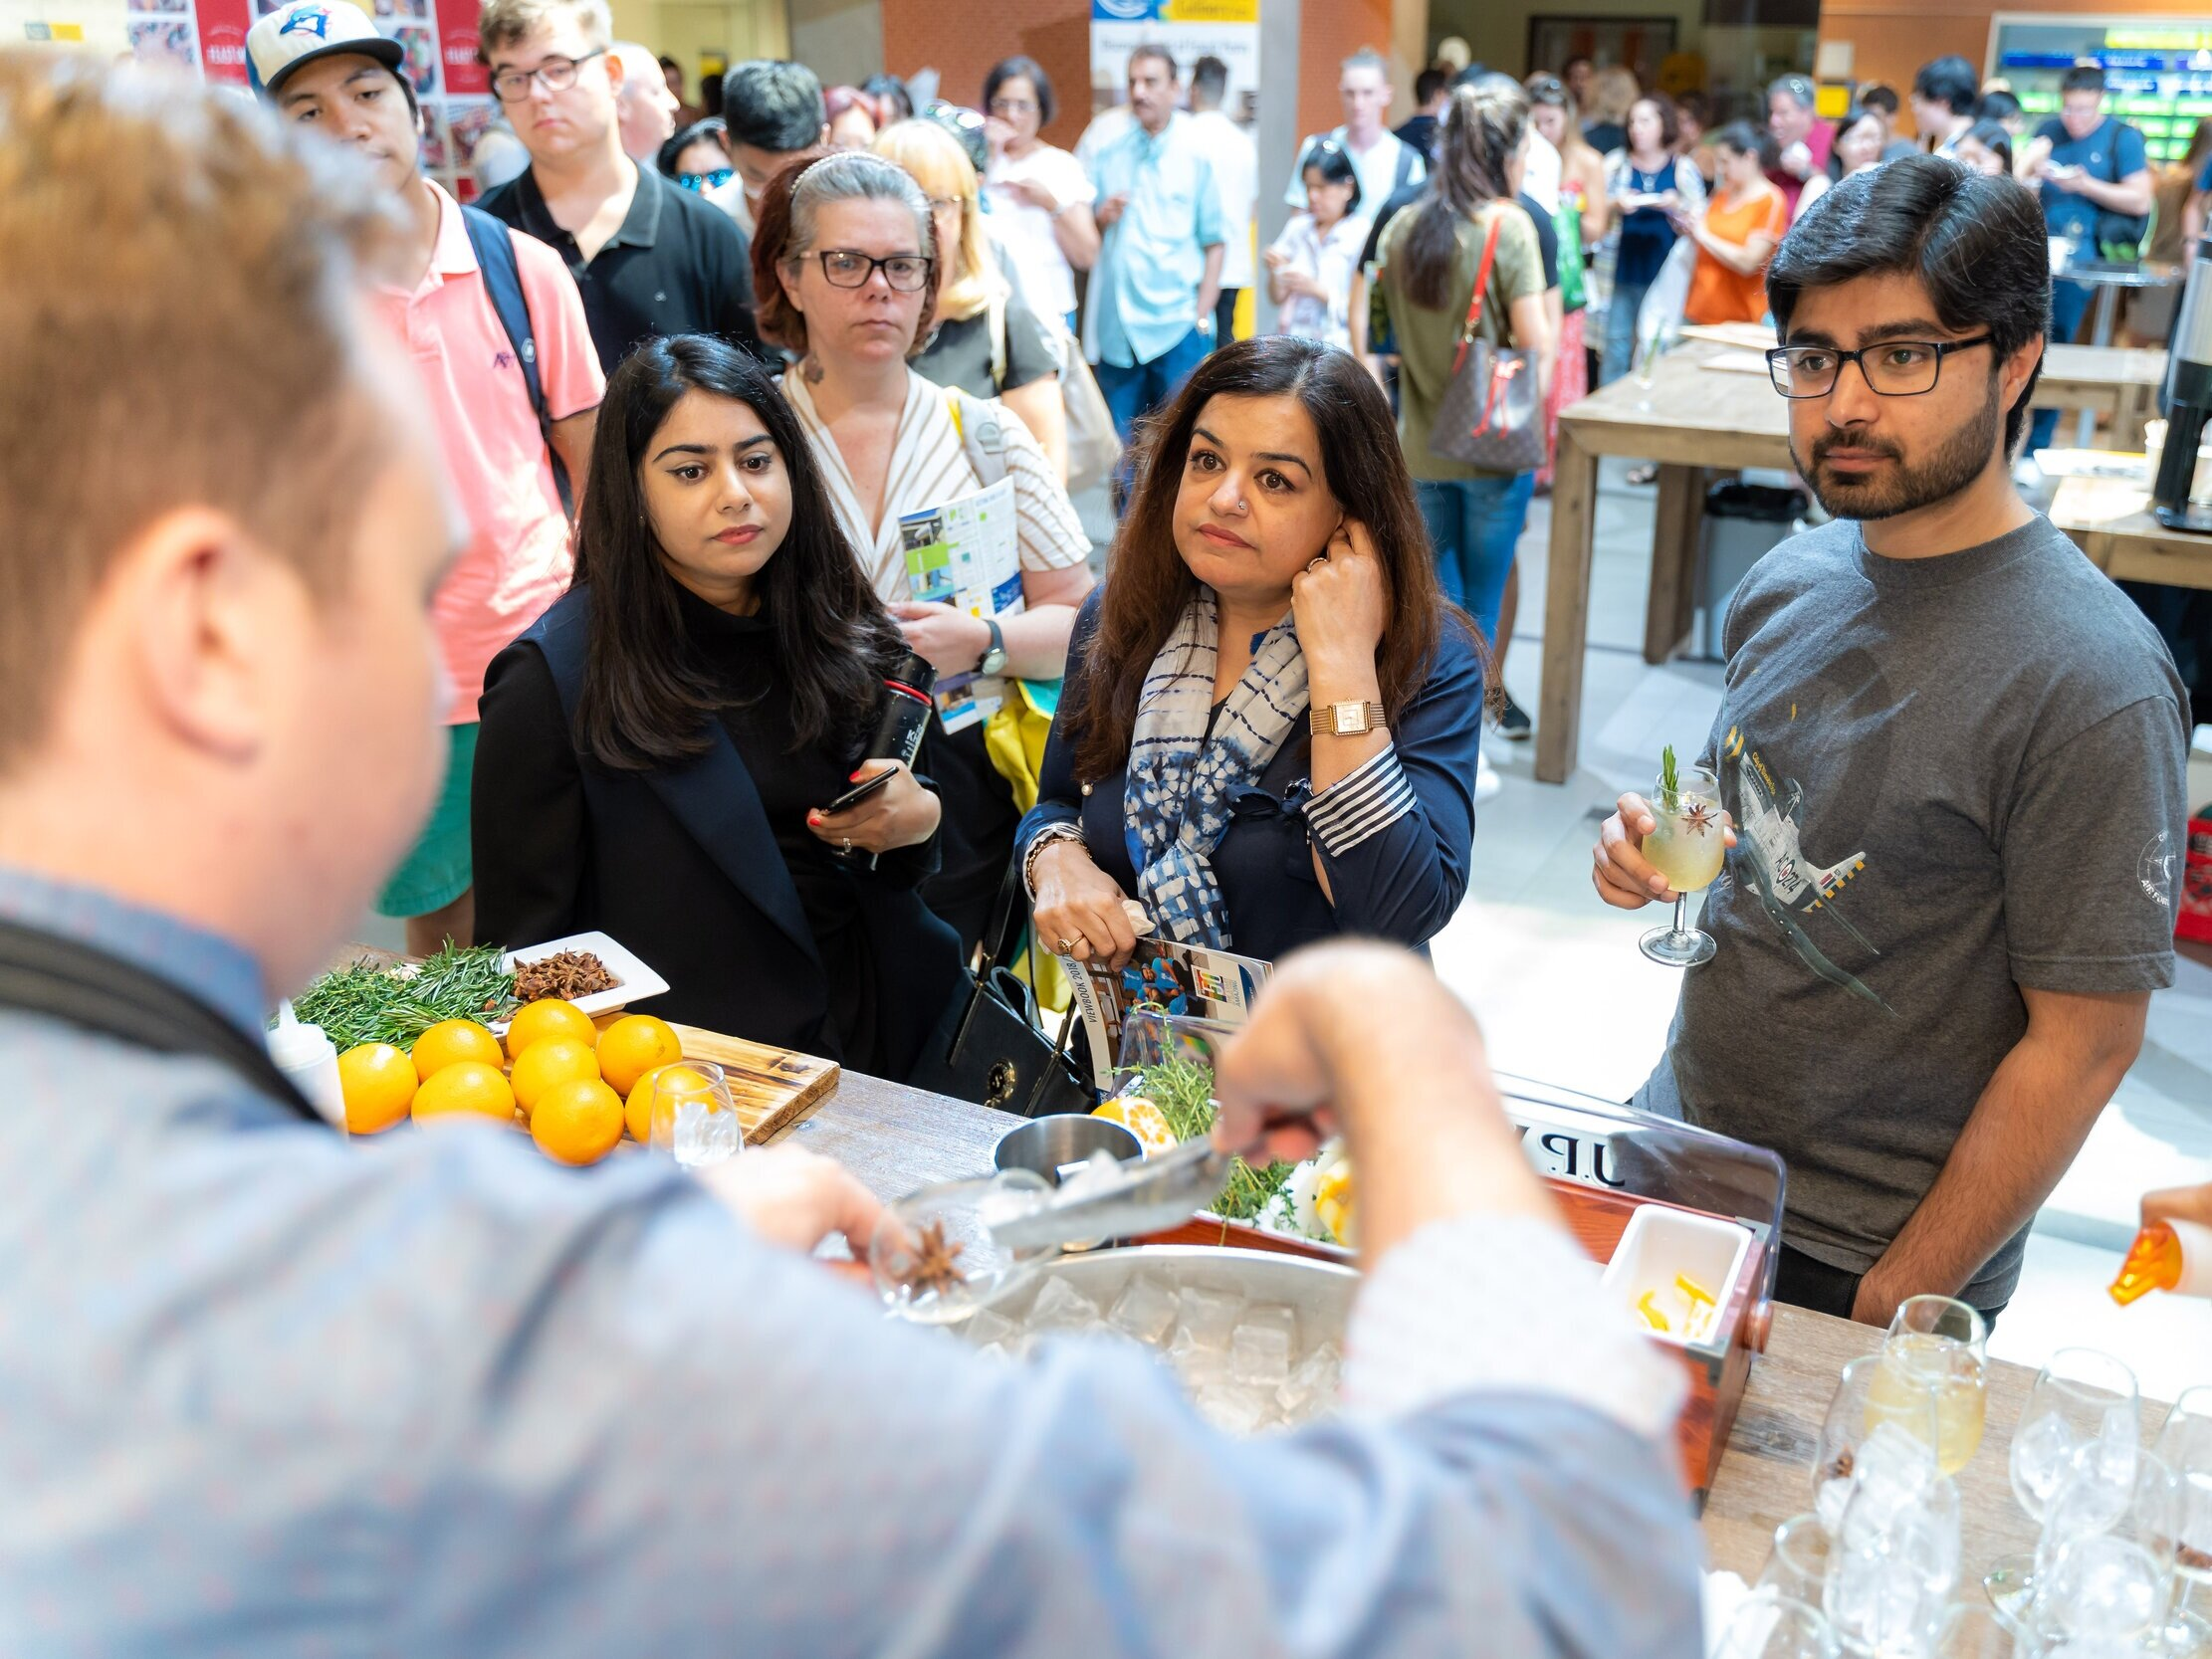 Guests attending a food & drink marketplace festival at George Brown College's Centre for Hospitality & Culinary Arts